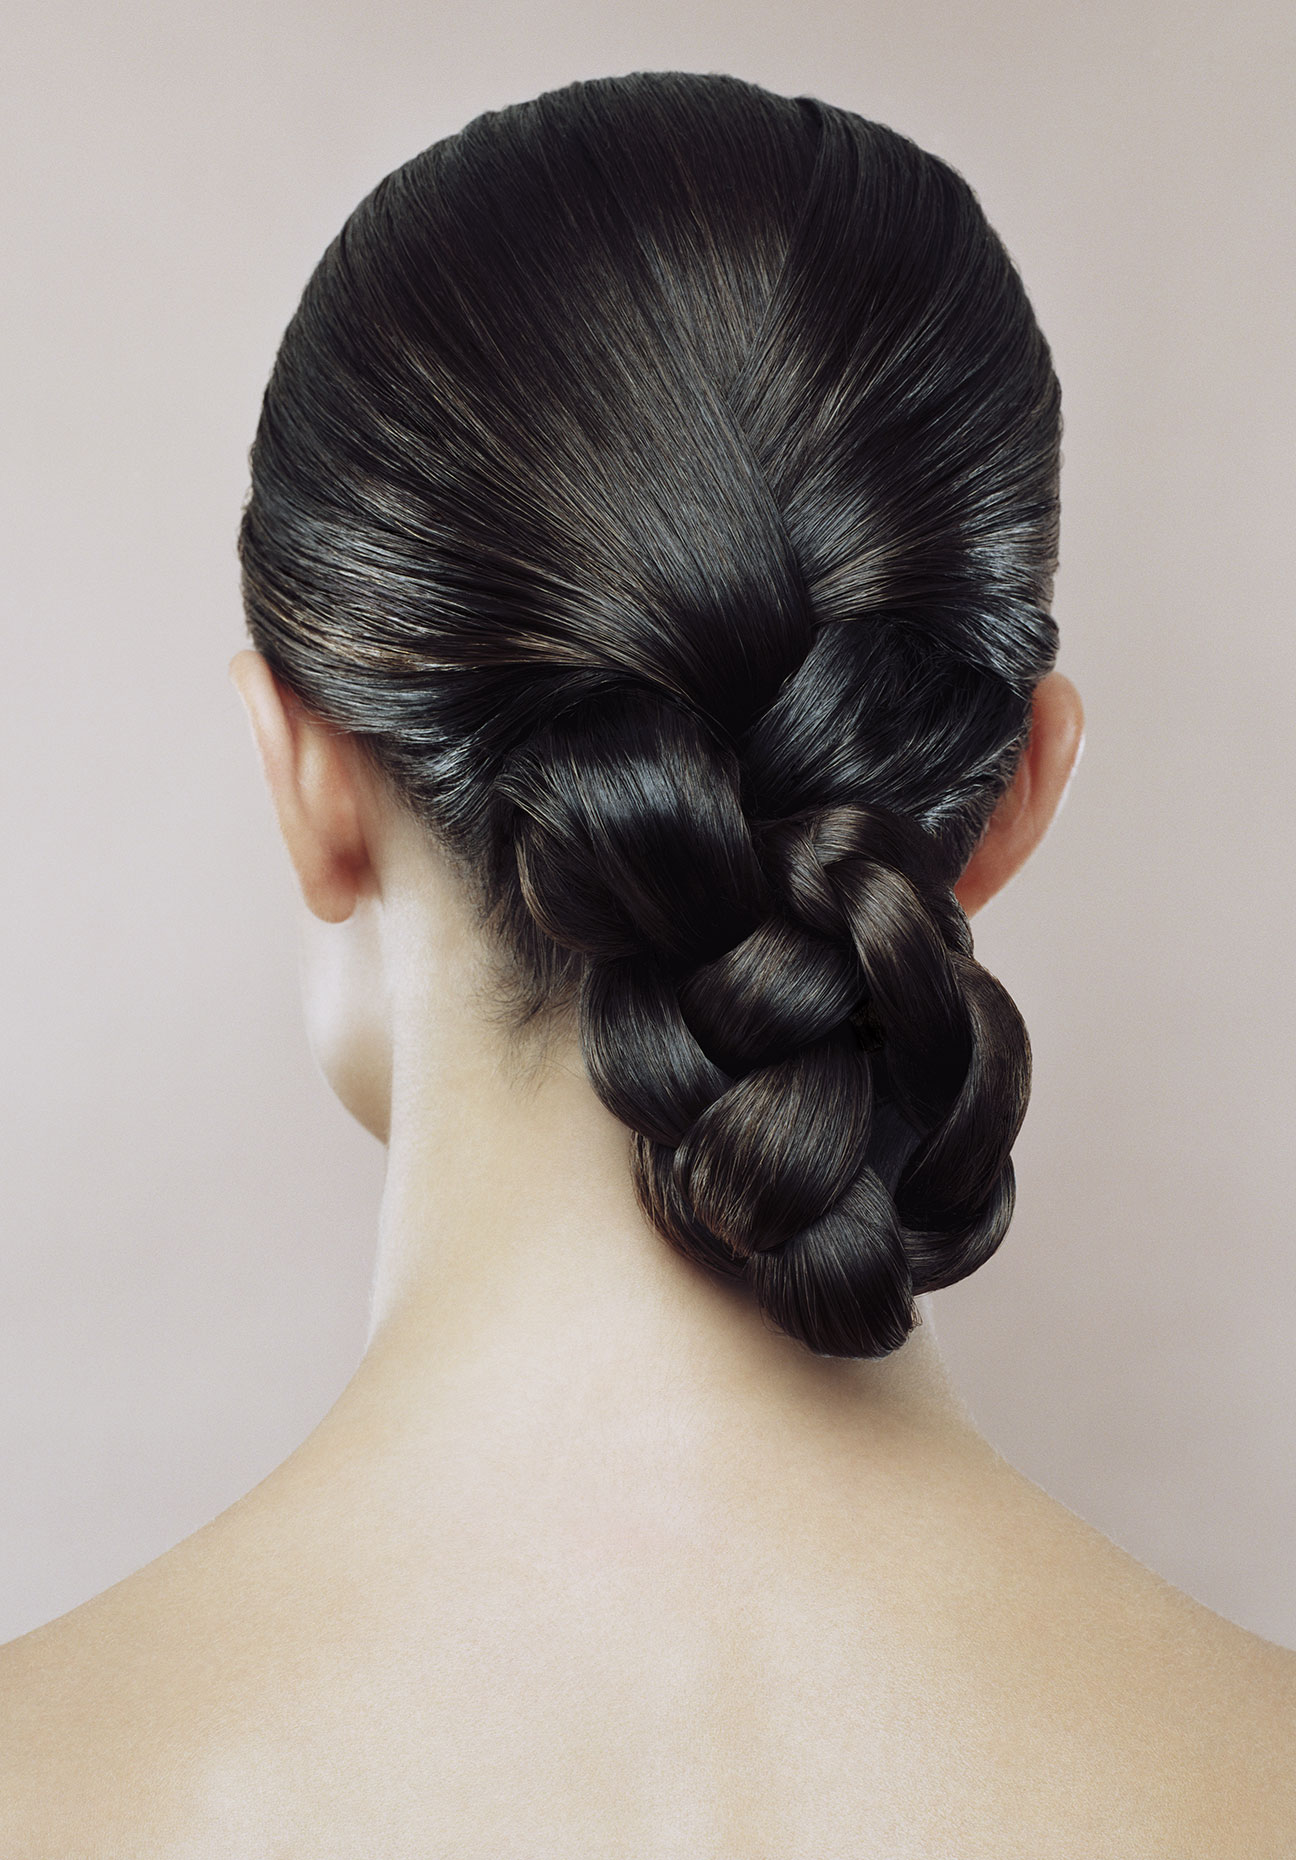 Woman with hair braided, rear view.